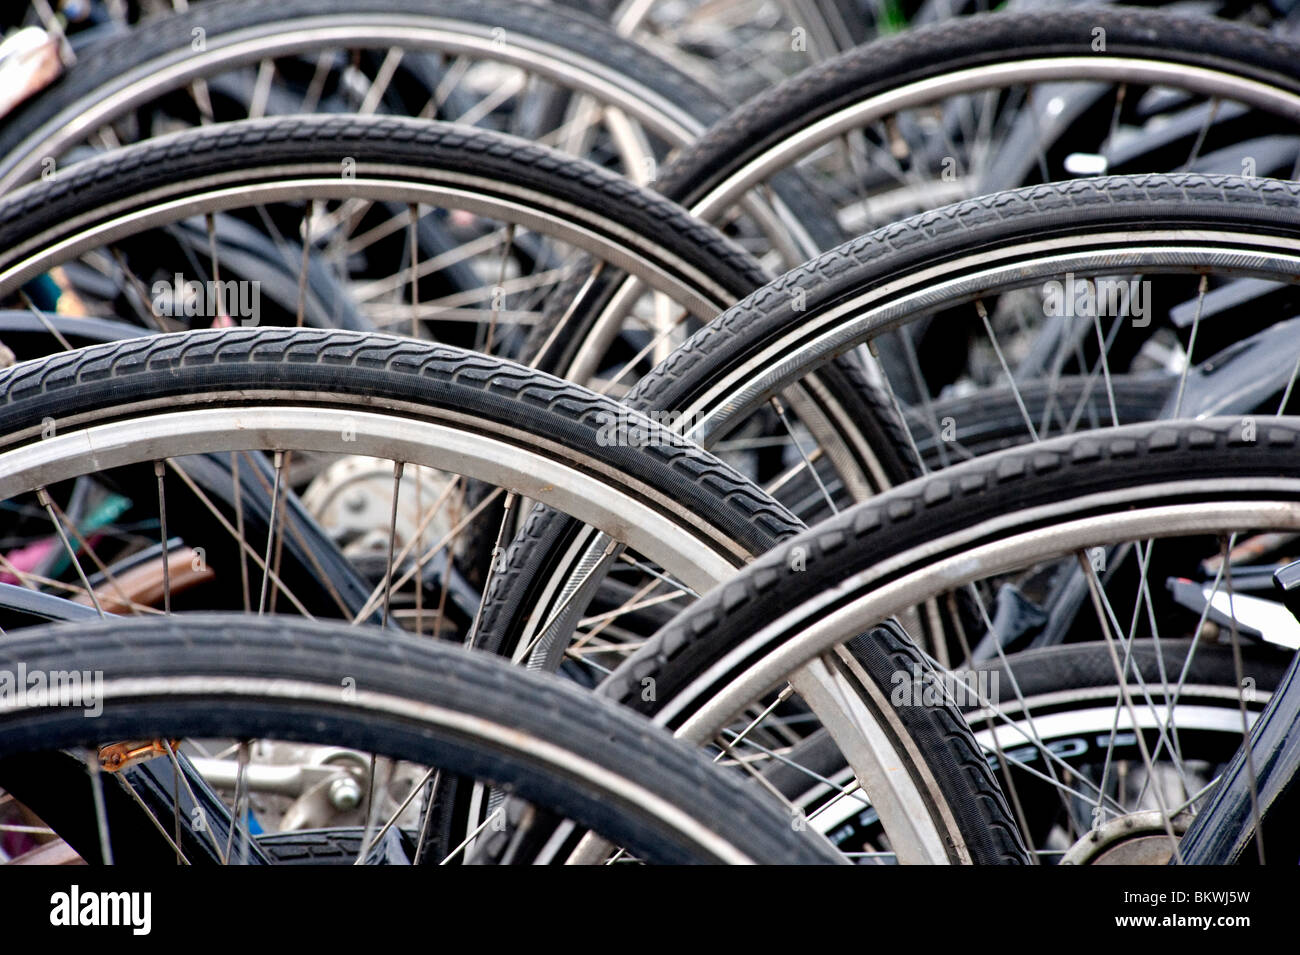 Many bicycles parked outside in city in The Netherlands - Stock Image